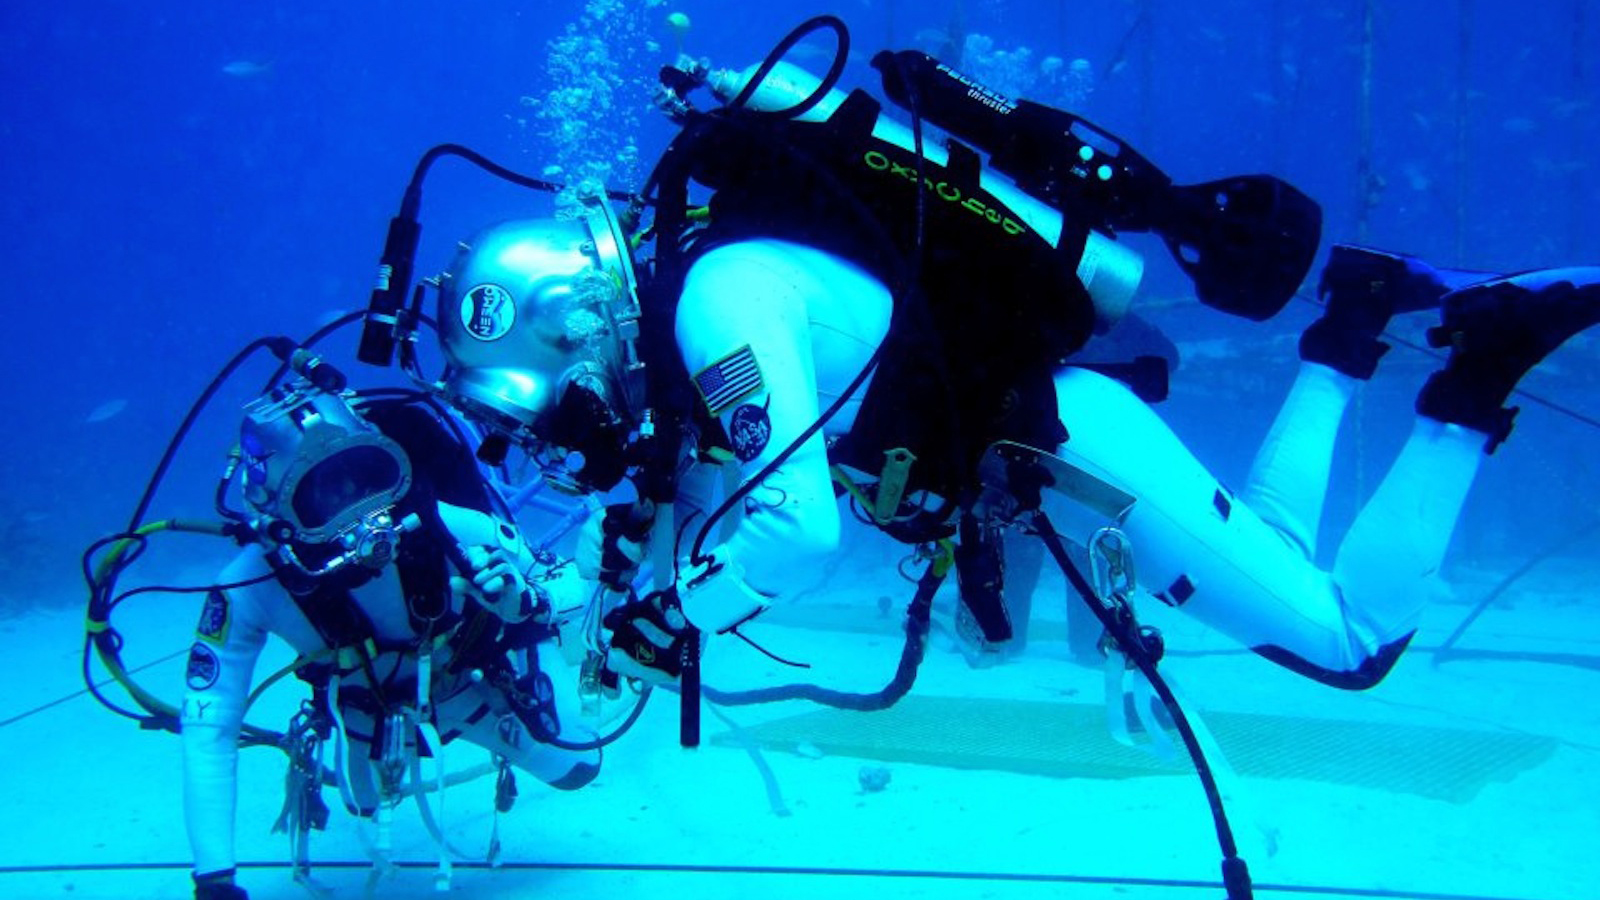 Click here to read How NASA Uses the Ocean to Train Astronauts for its Most Dangerous Missions